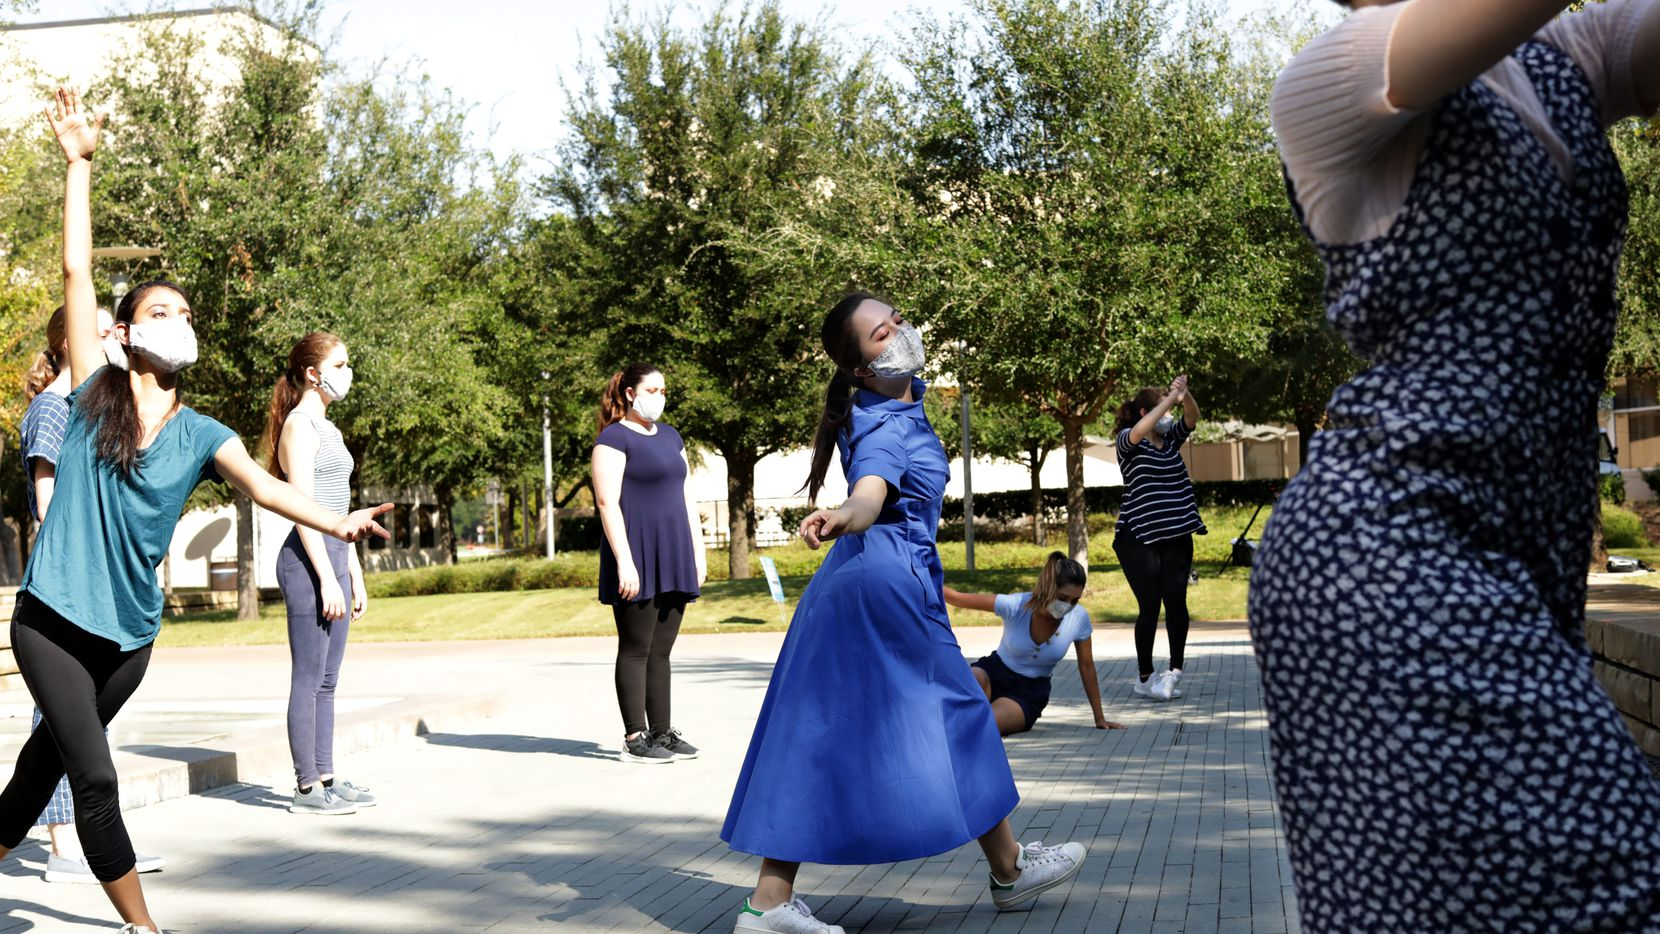 The UTDance Ensemble records a performance at the University of Texas at Dallas in Richardson. The dancers incorporated movements created by participants in a dance class for Parkinson's patients.